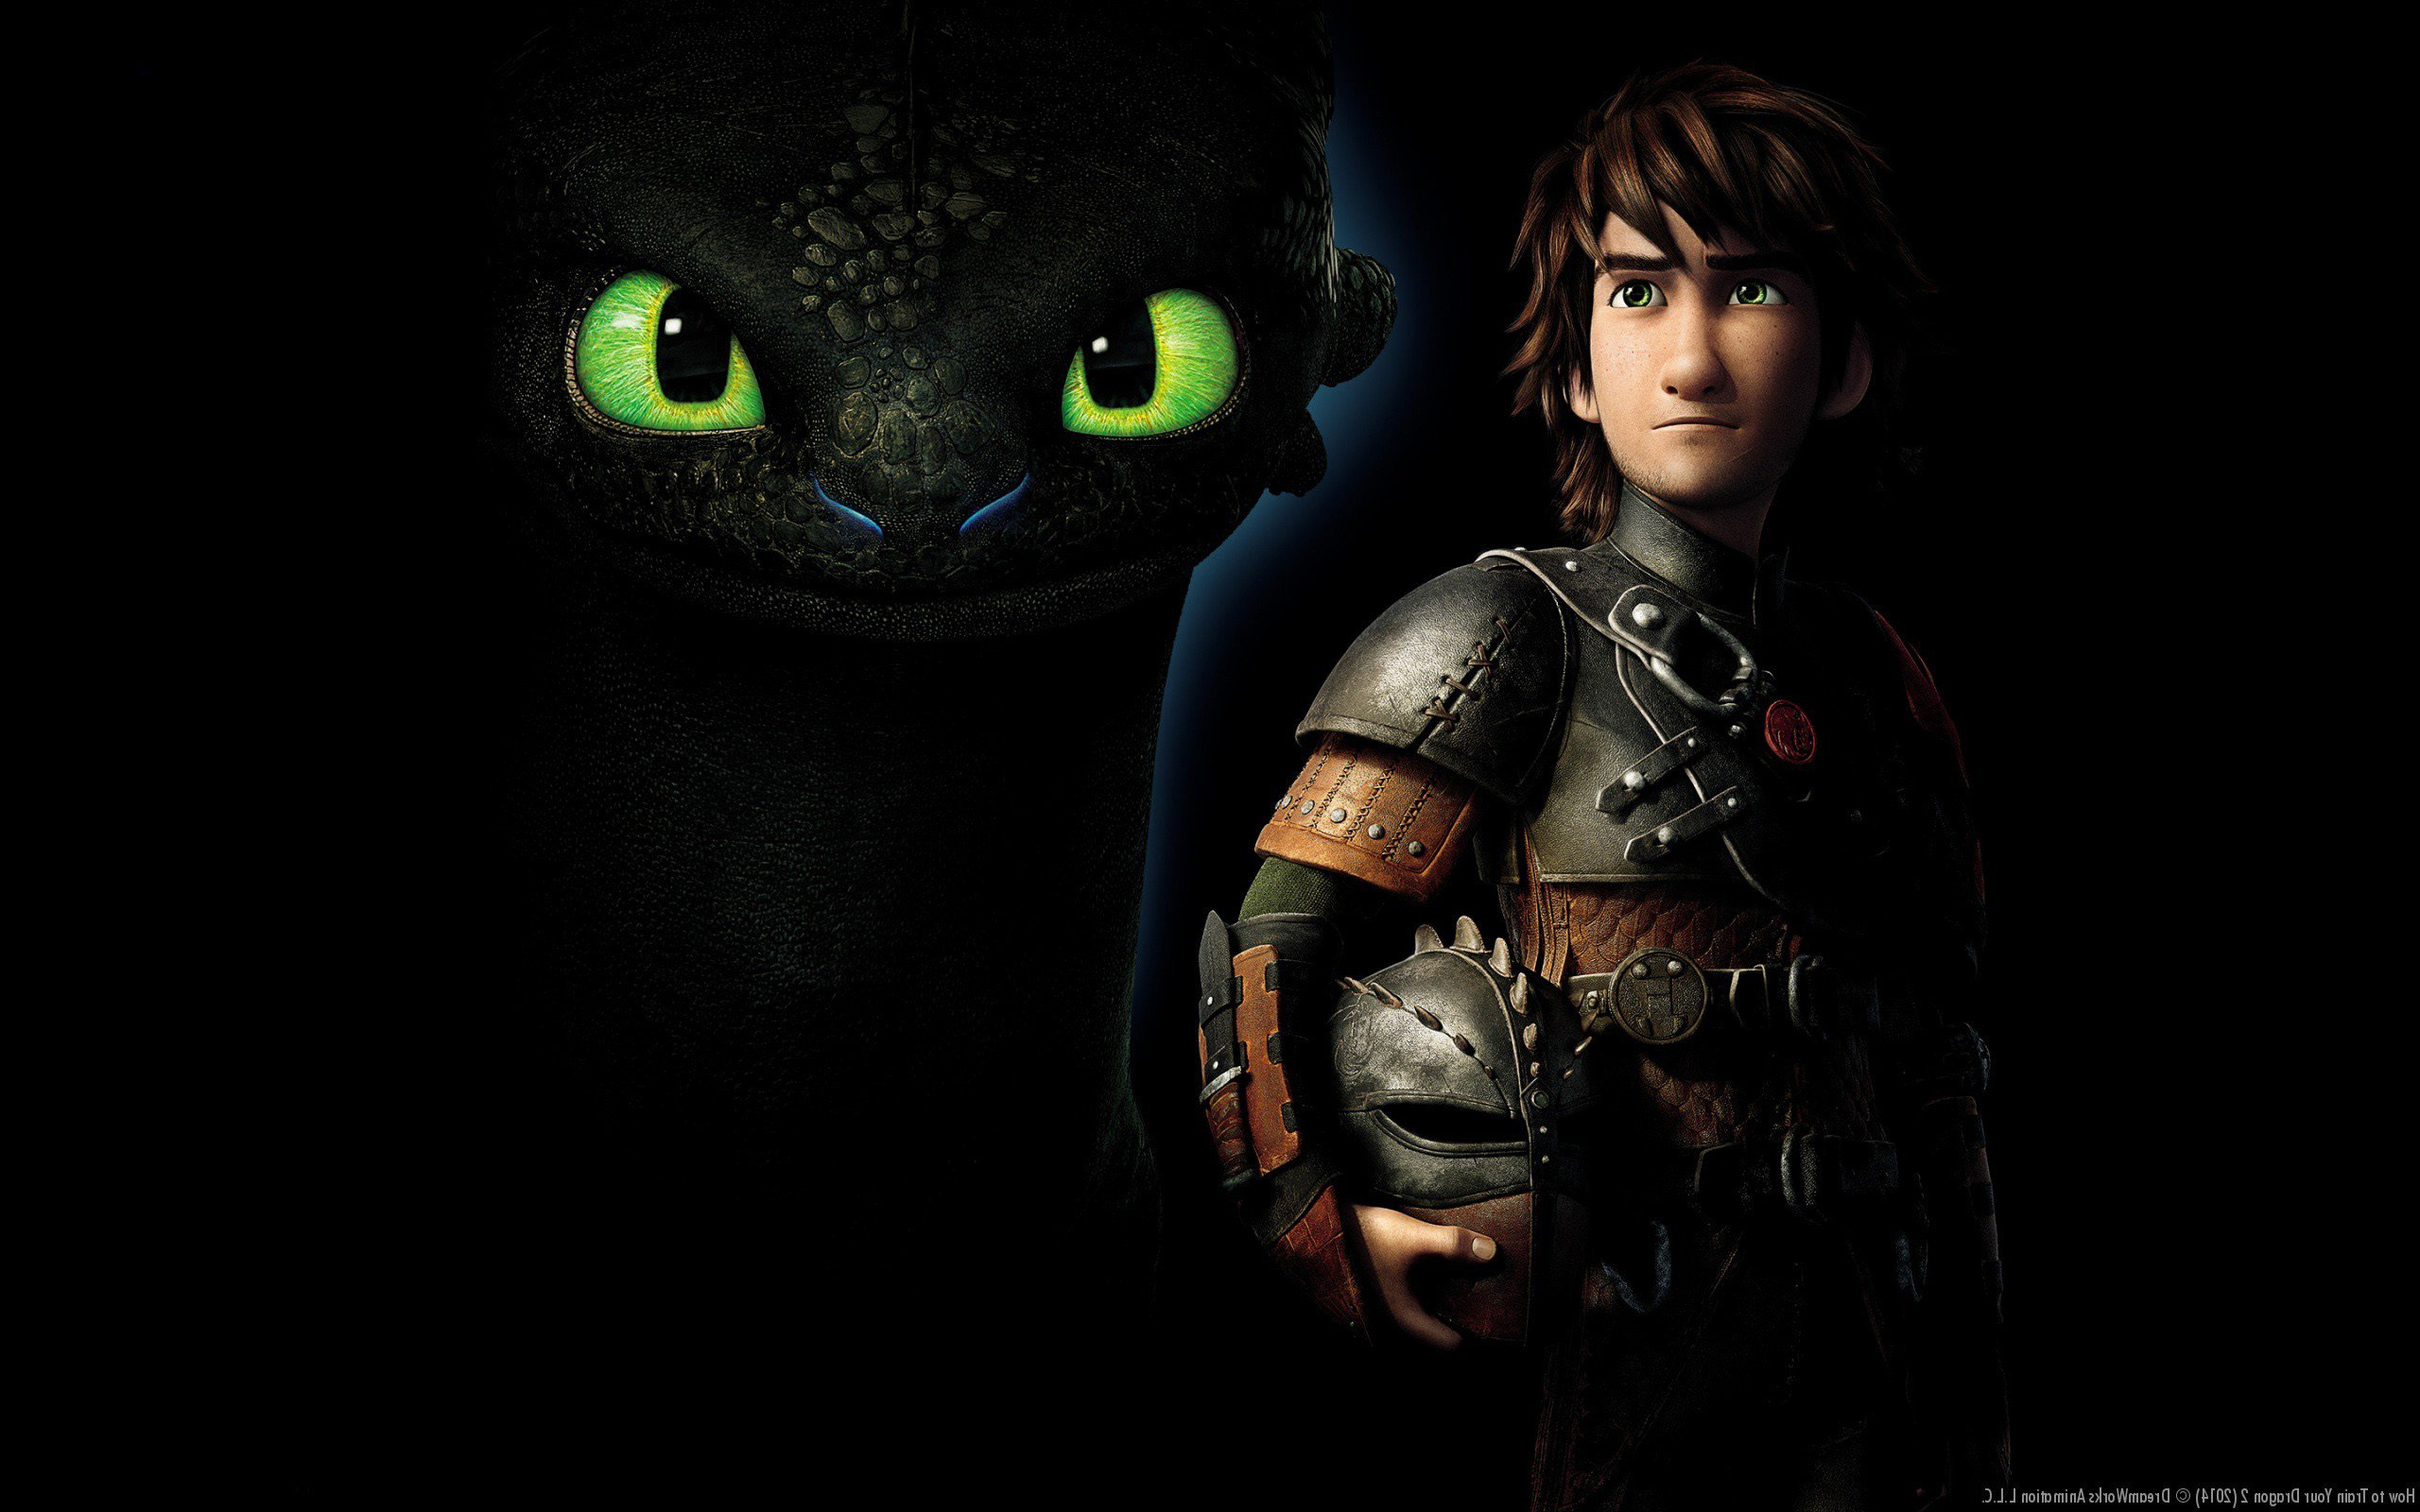 How To Train Your Dragon Hd Hd Movies 4k Wallpapers